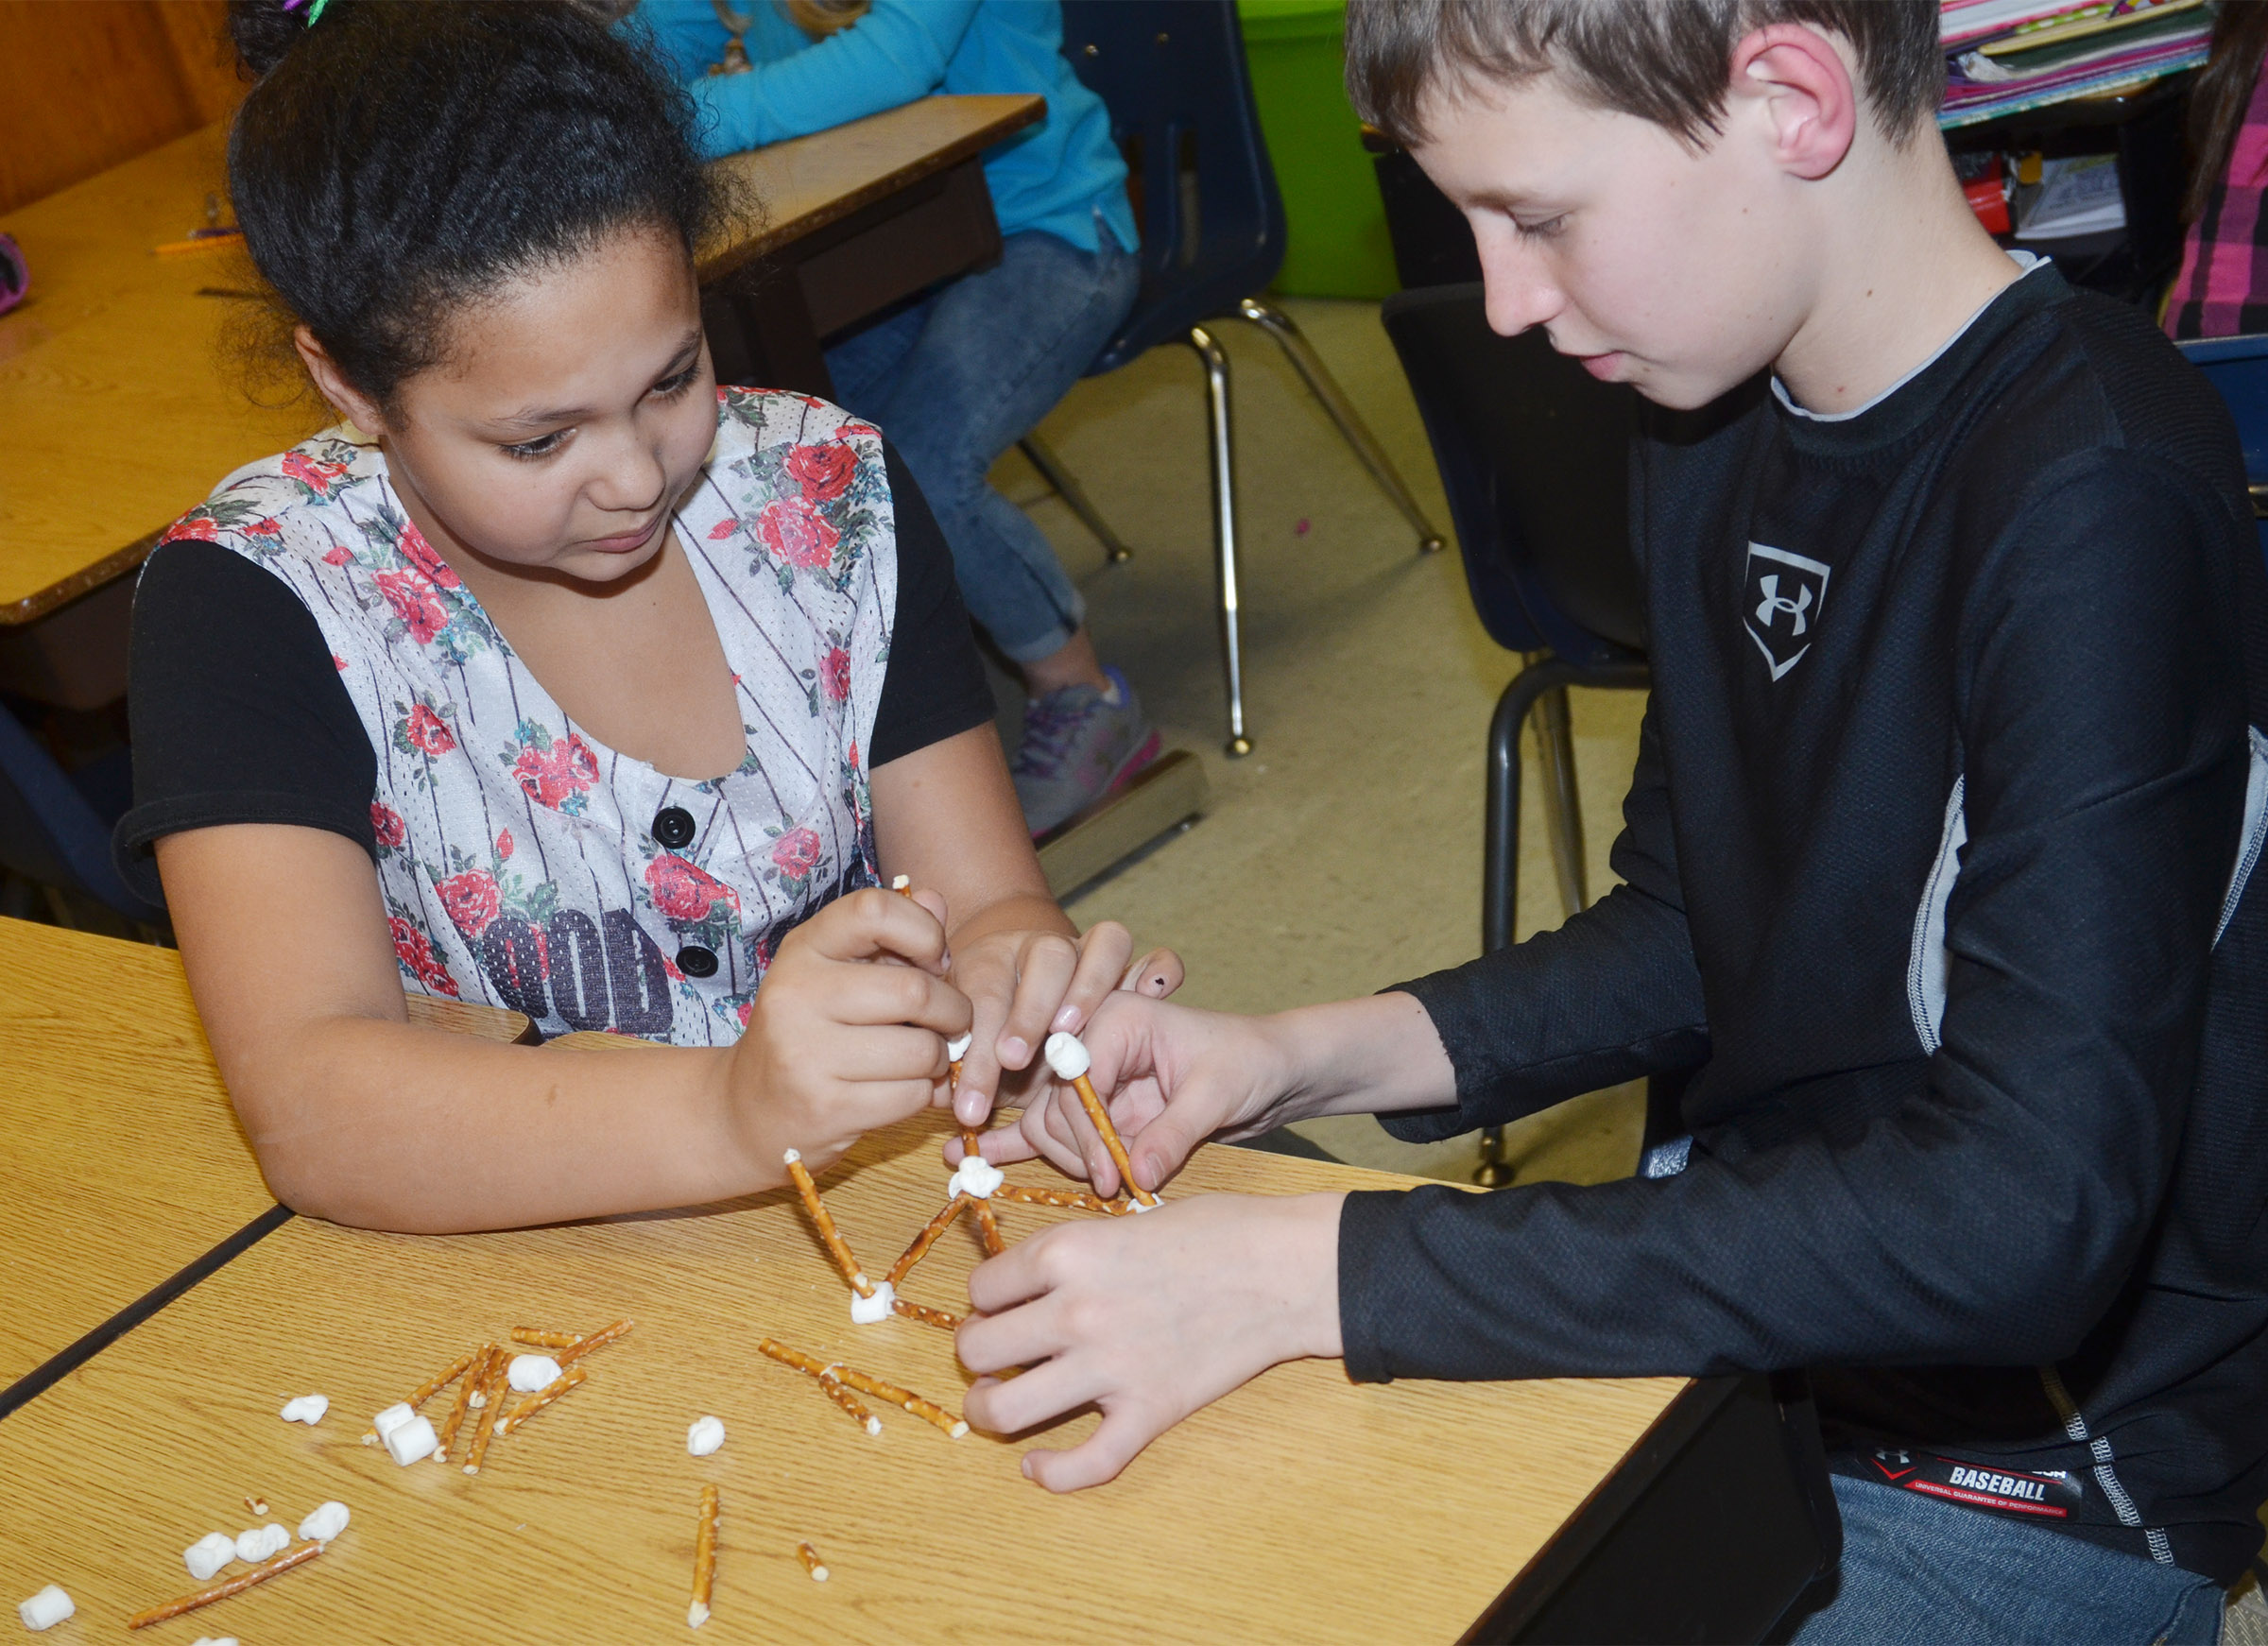 CMS fourth-graders Kenya Bridgewater, at left, and Rowan Petett make geometric shapes with marshmallows and pretzels.